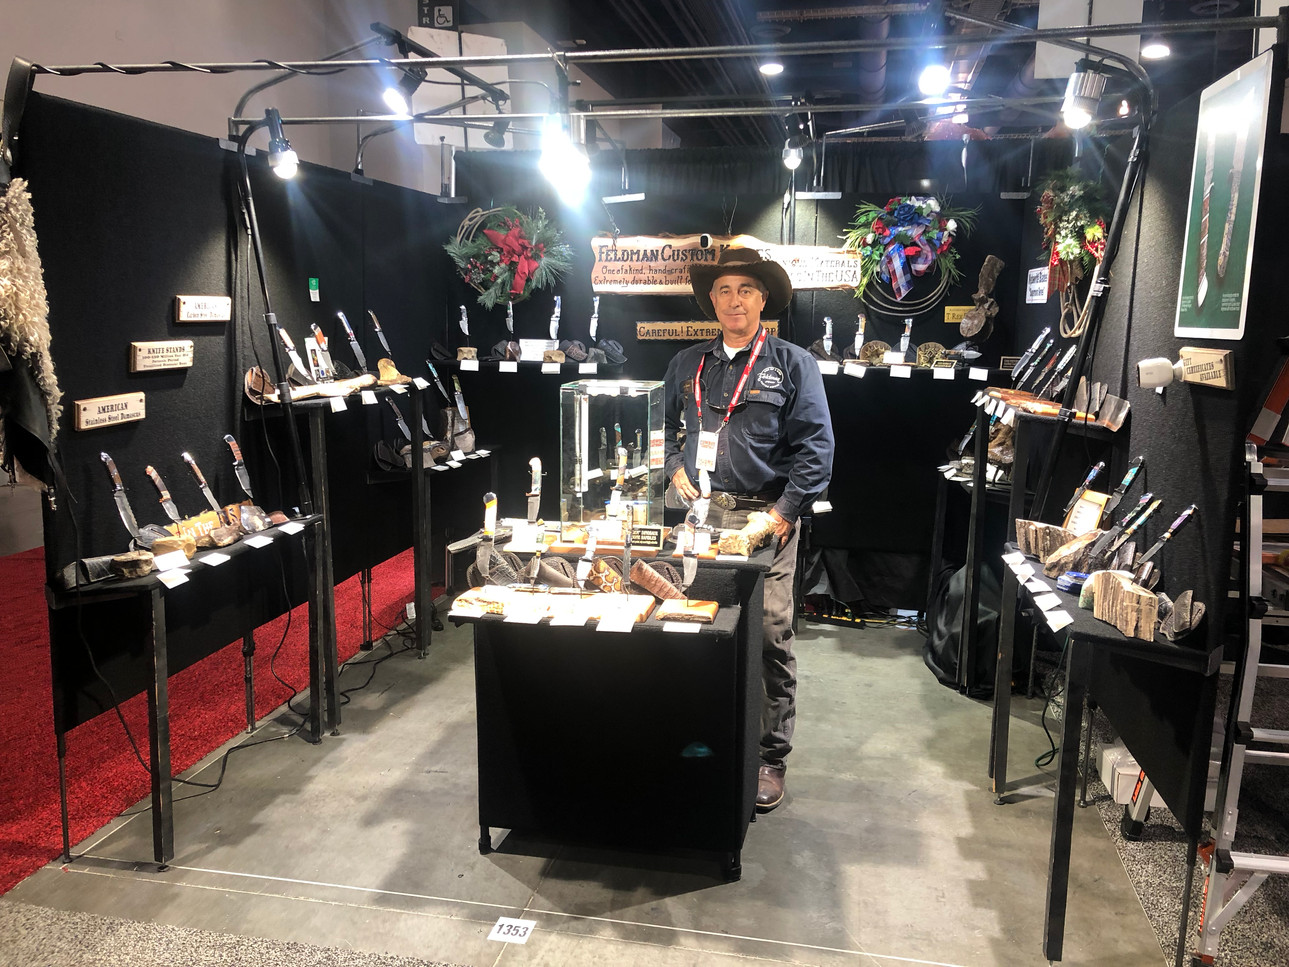 Feldman Custom Knives booth at Cowboy Christmas 2018 Las Vegas Convention